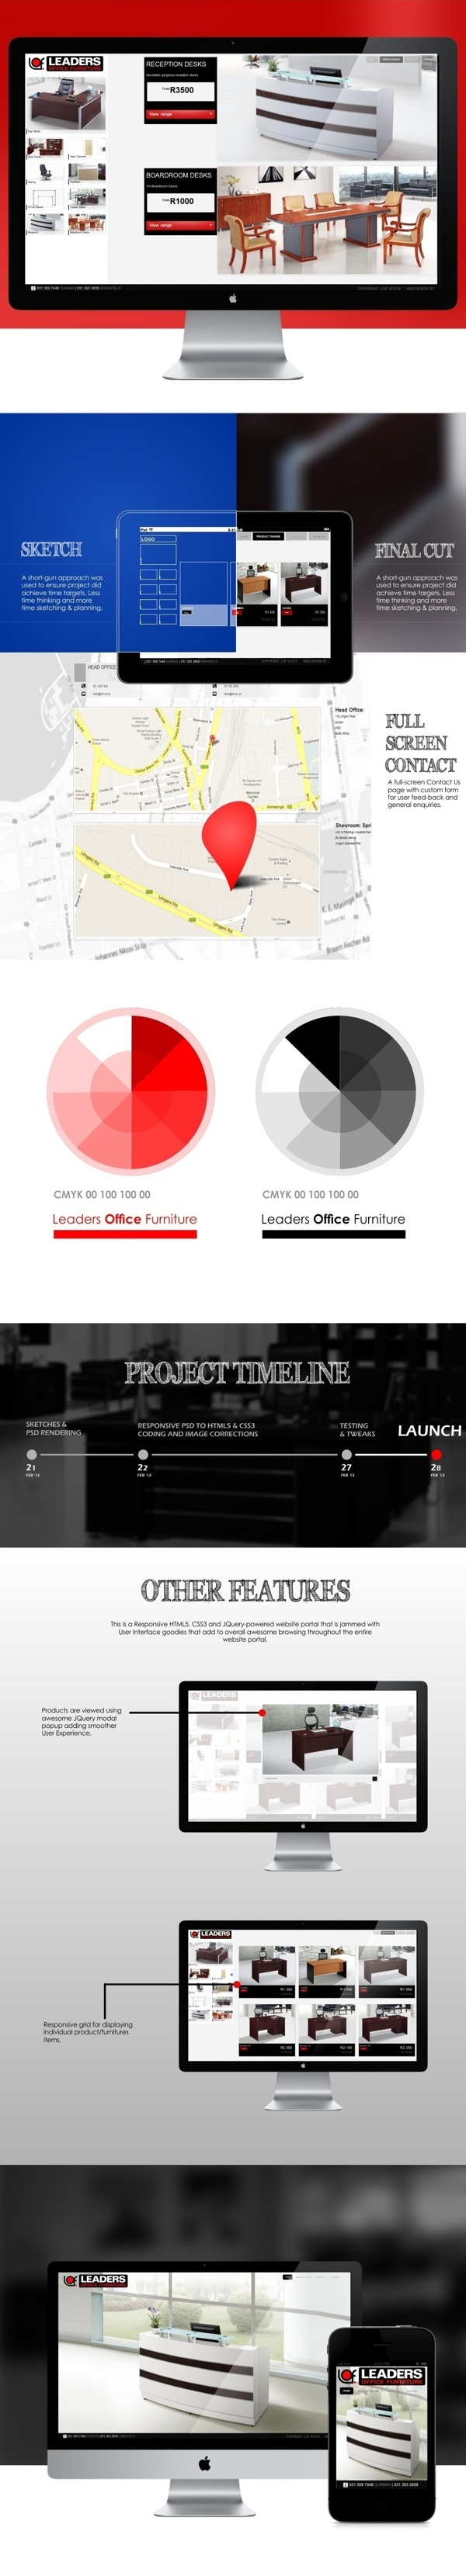 UI Design V2  - The New LOF by Goldtree , via Behance